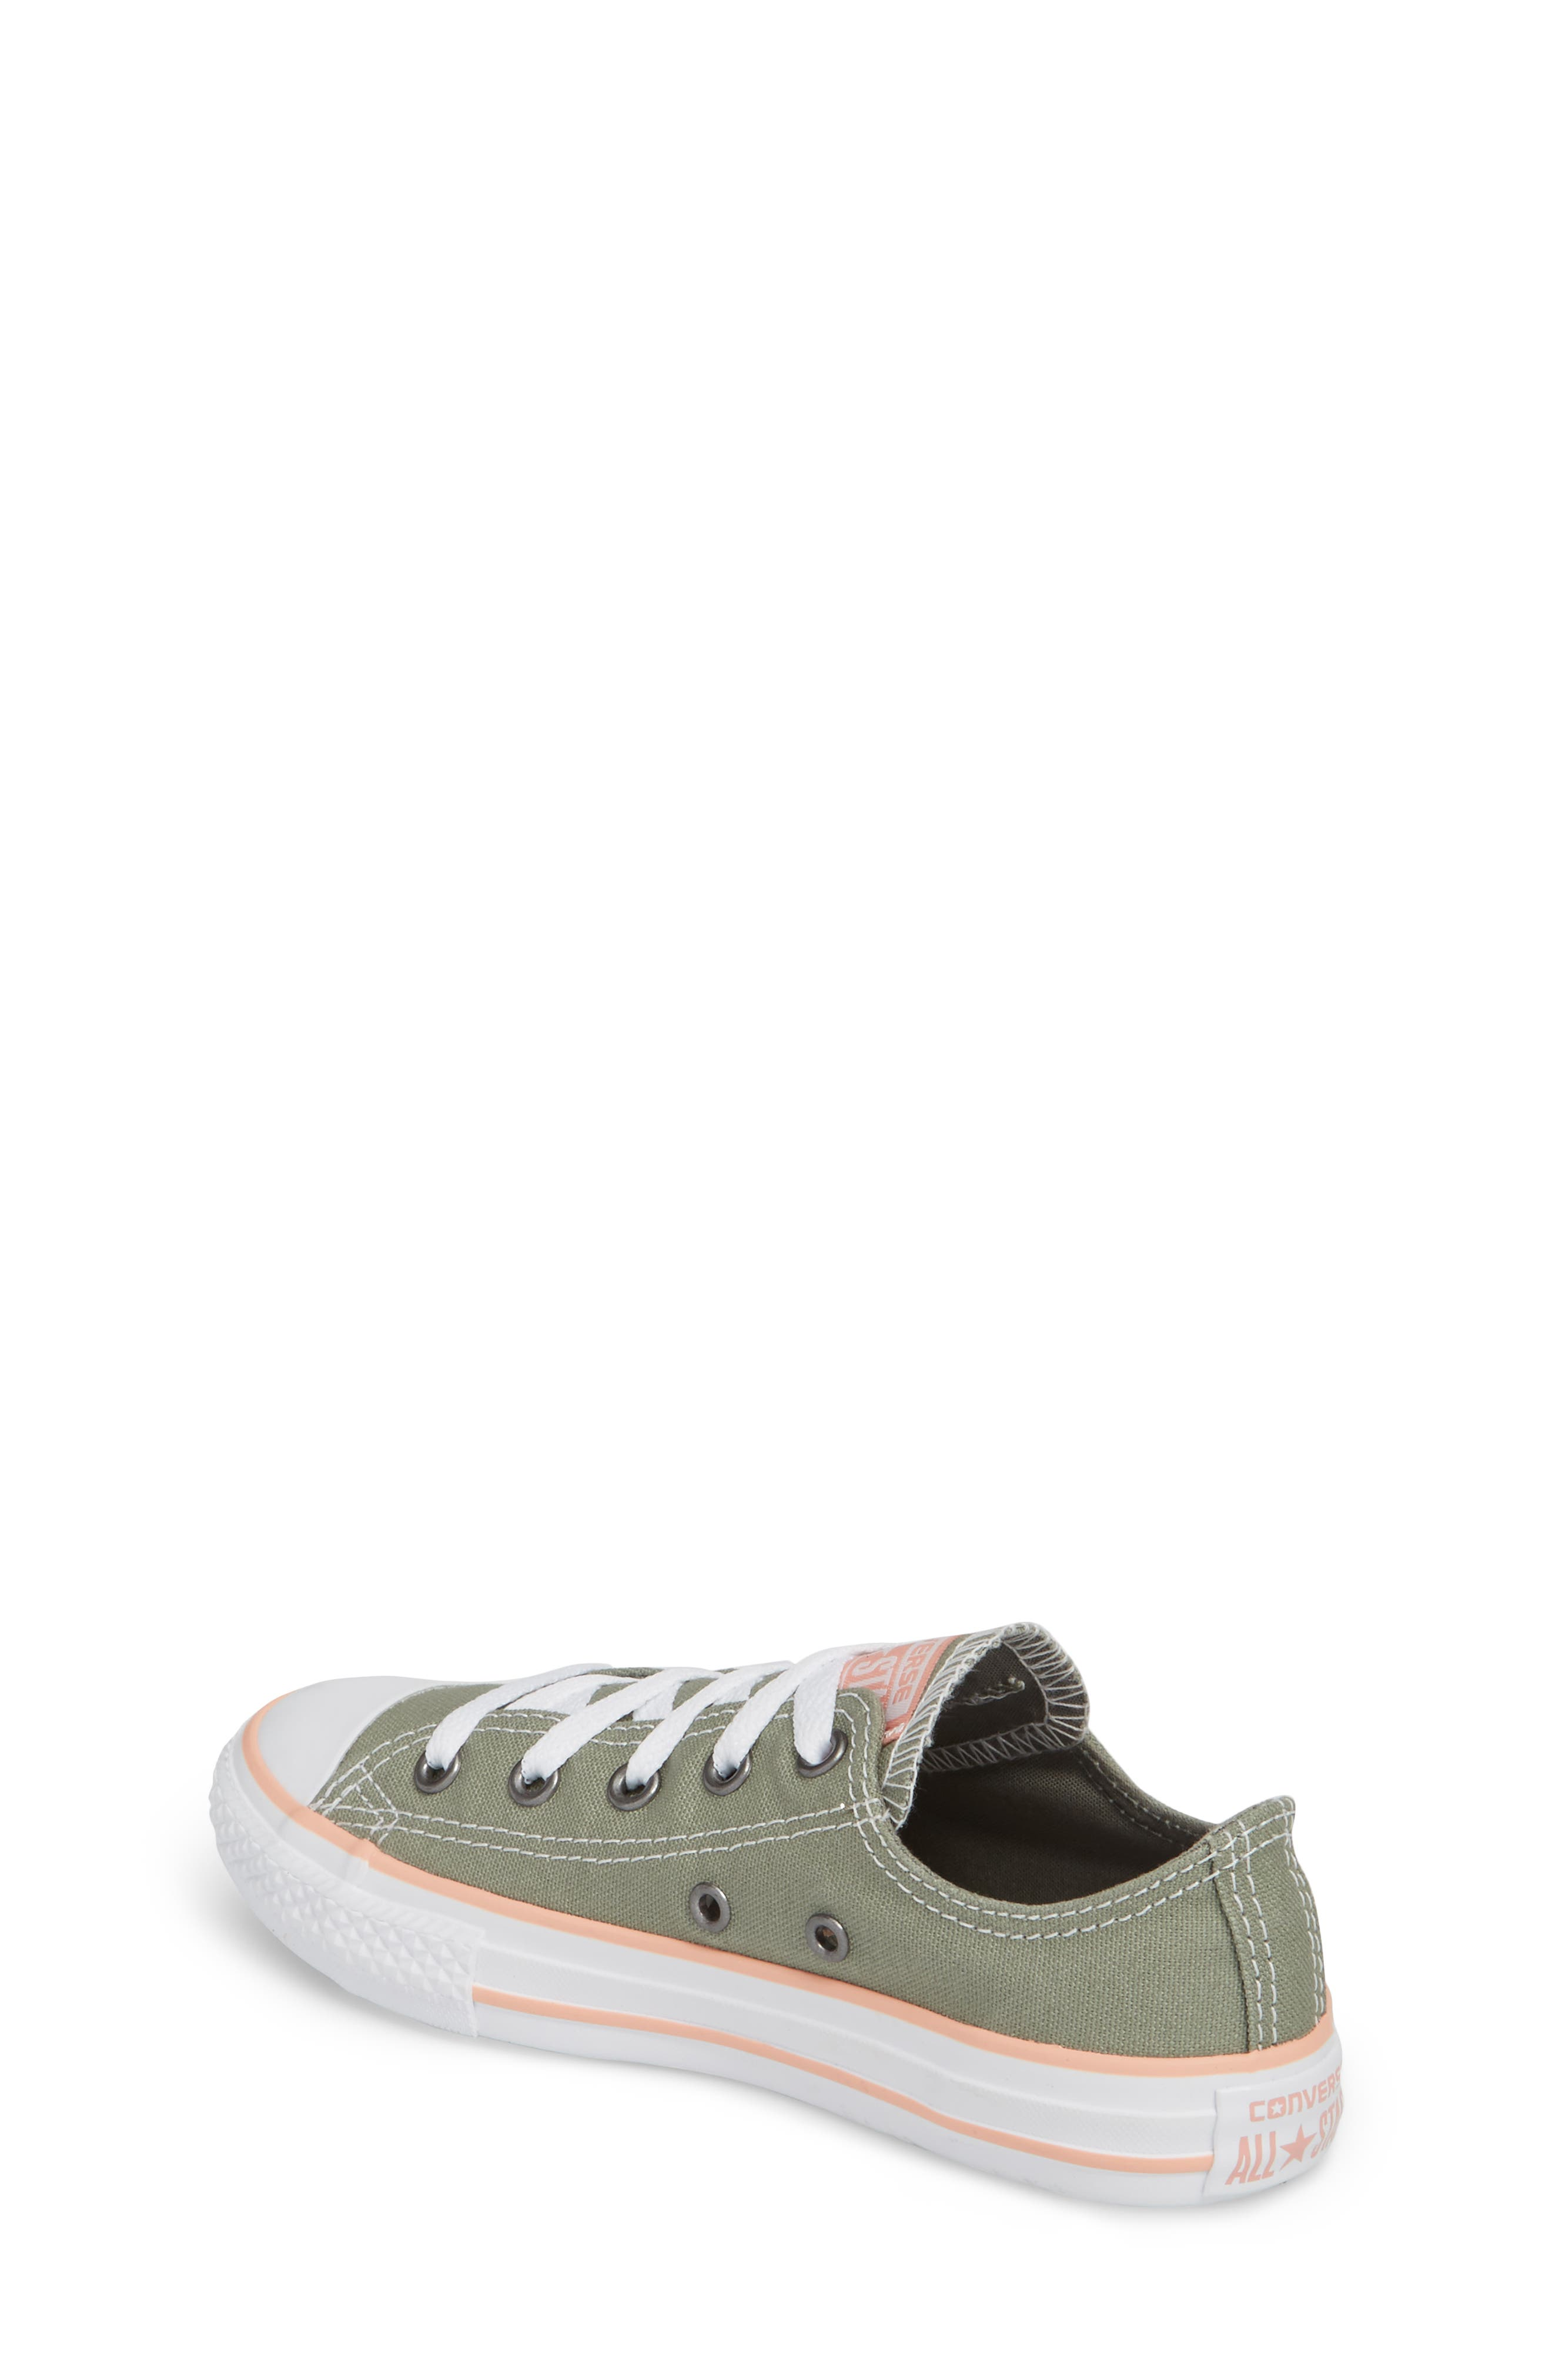 Chuck Taylor<sup>®</sup> All Star<sup>®</sup> Low Top Sneaker,                             Alternate thumbnail 3, color,